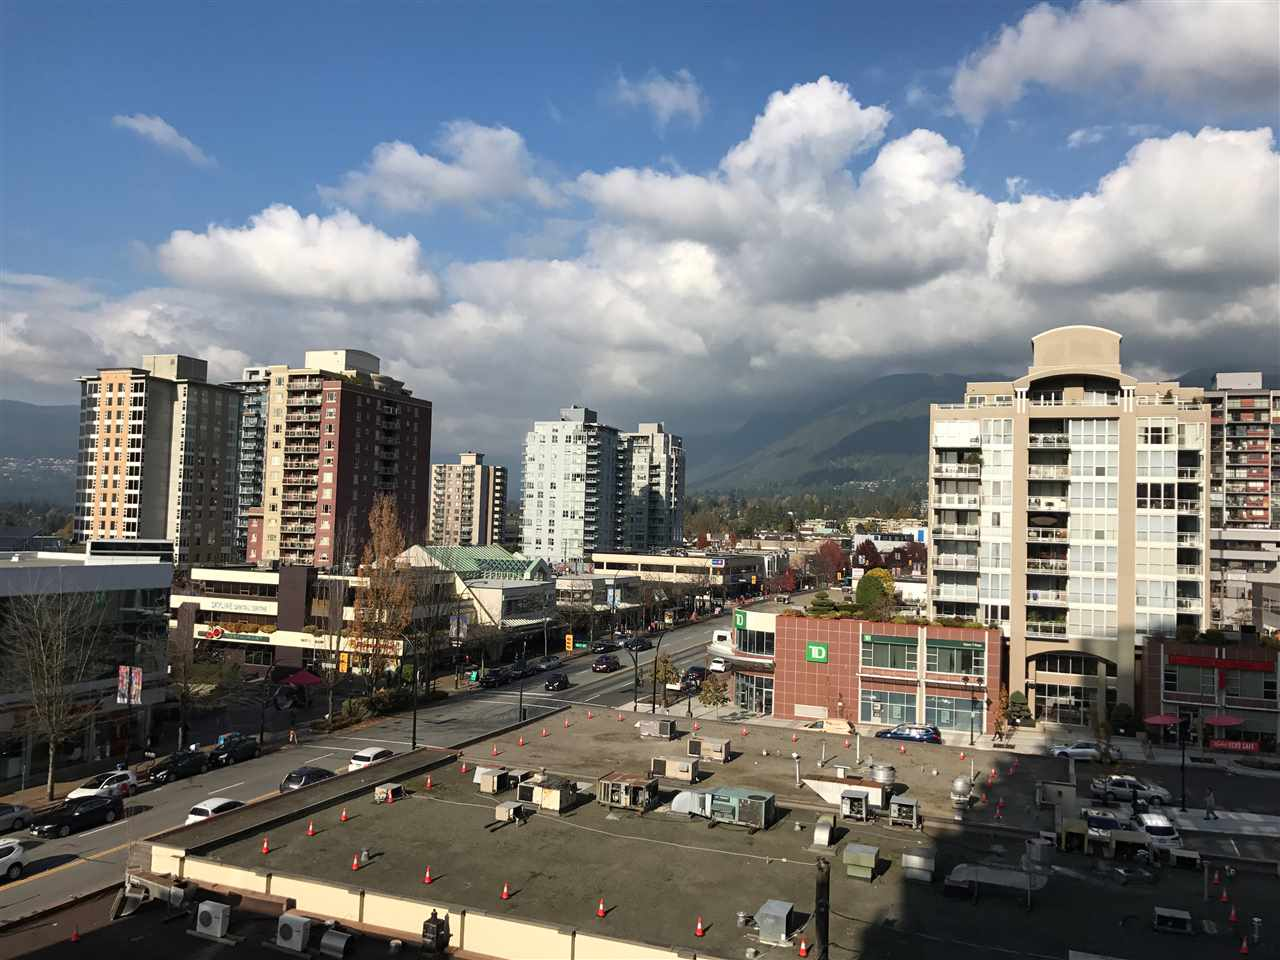 Junior 1 Bedroom Suite in Central Lonsdale. First Class Residence, large bedroom, stone countertops, hardwood floors, Miele appliances, air conditioning, mountain views, 1 parking and 1 storage locker, building offer massive gym, squash court, media room, lounge, pool and hot tub.